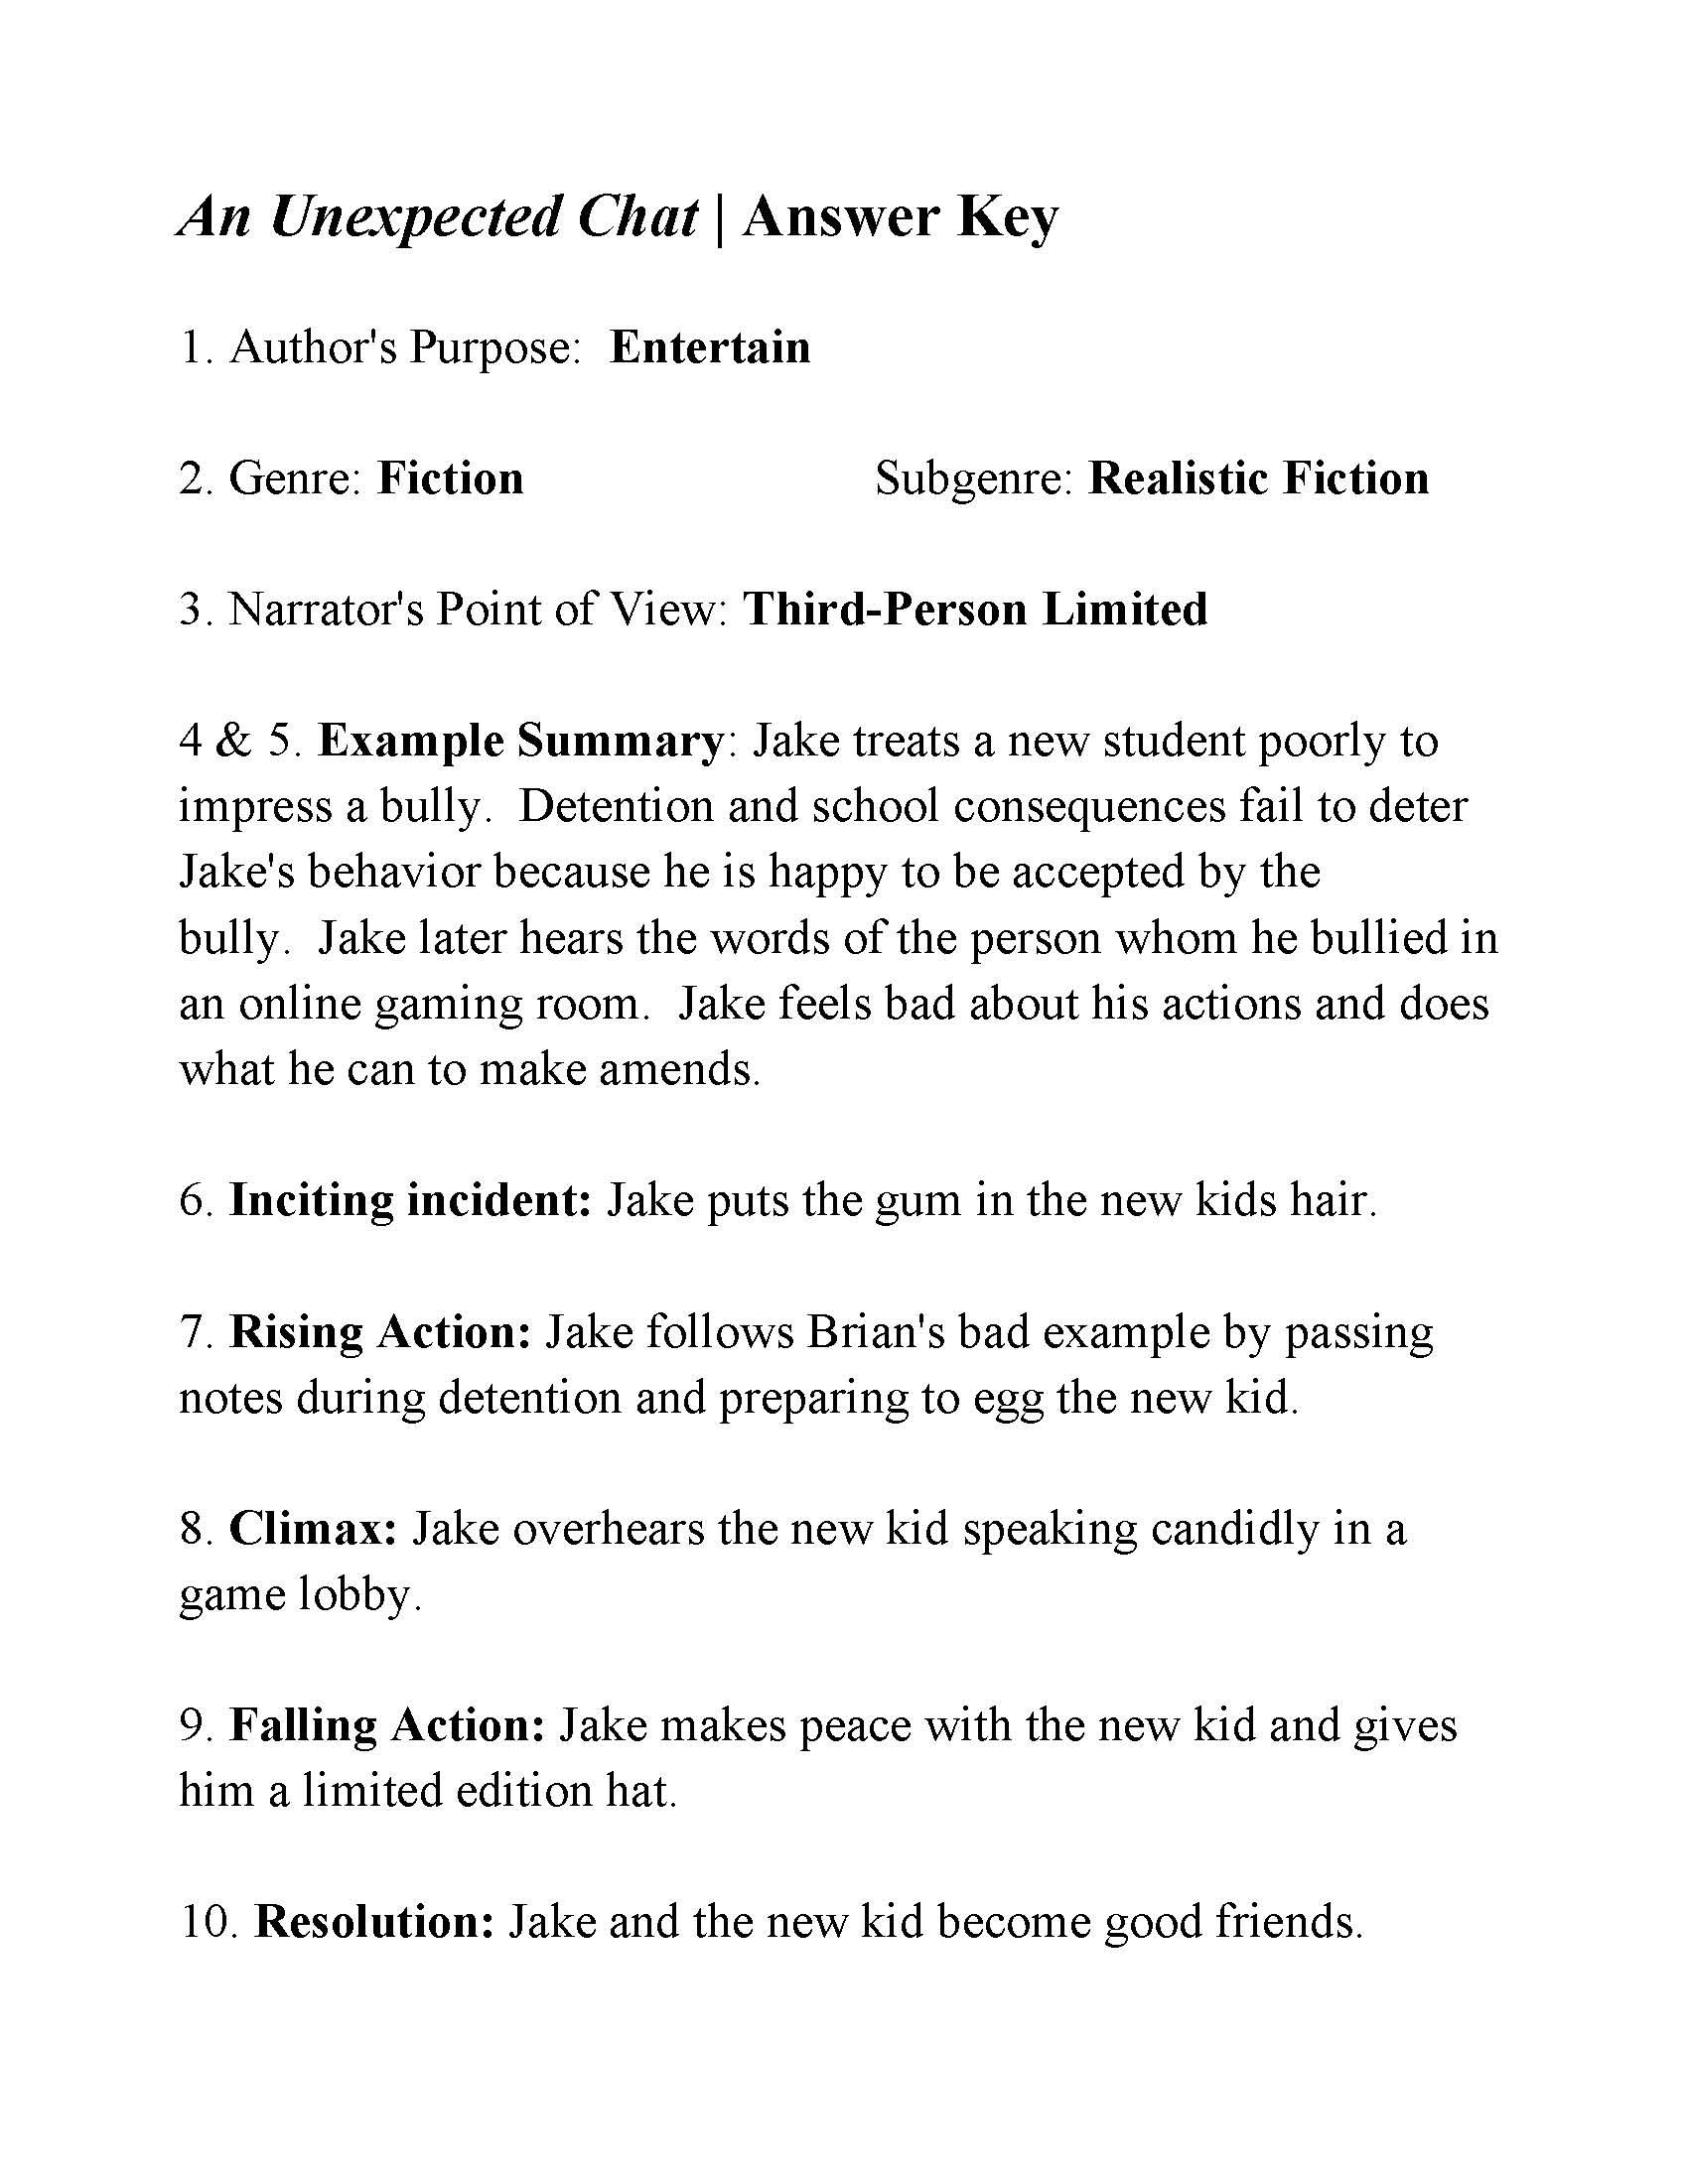 This Is The Answer Key For The An Unexpected Chat Life Hacks For School Reading Worksheets Authors Purpose